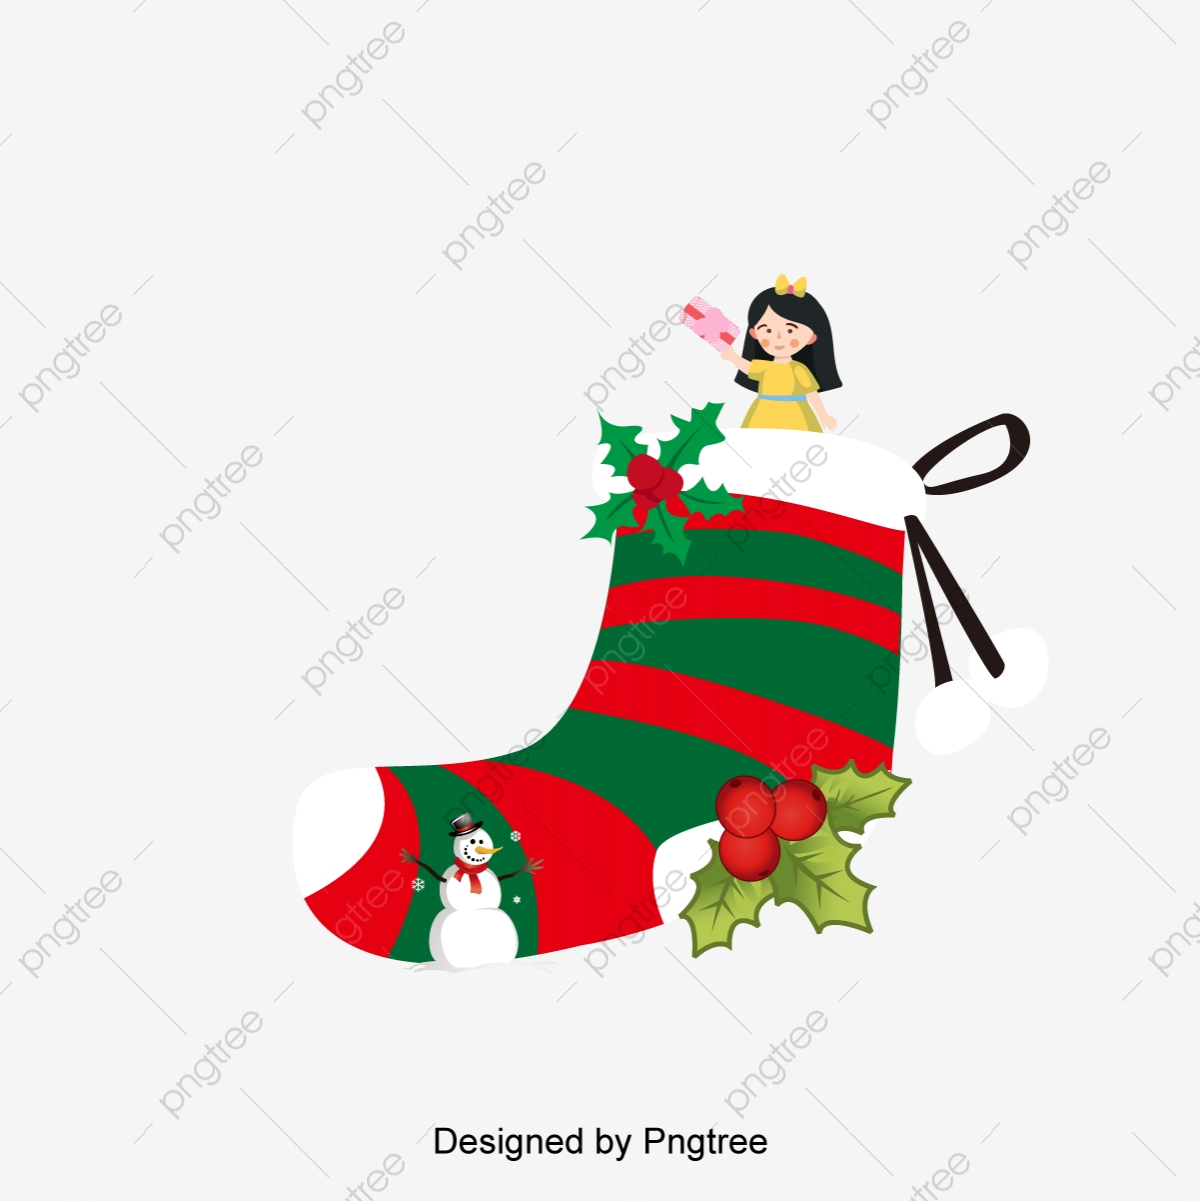 Country Christmas Background.Christmas Day Little Man Country Illustration Scene Small